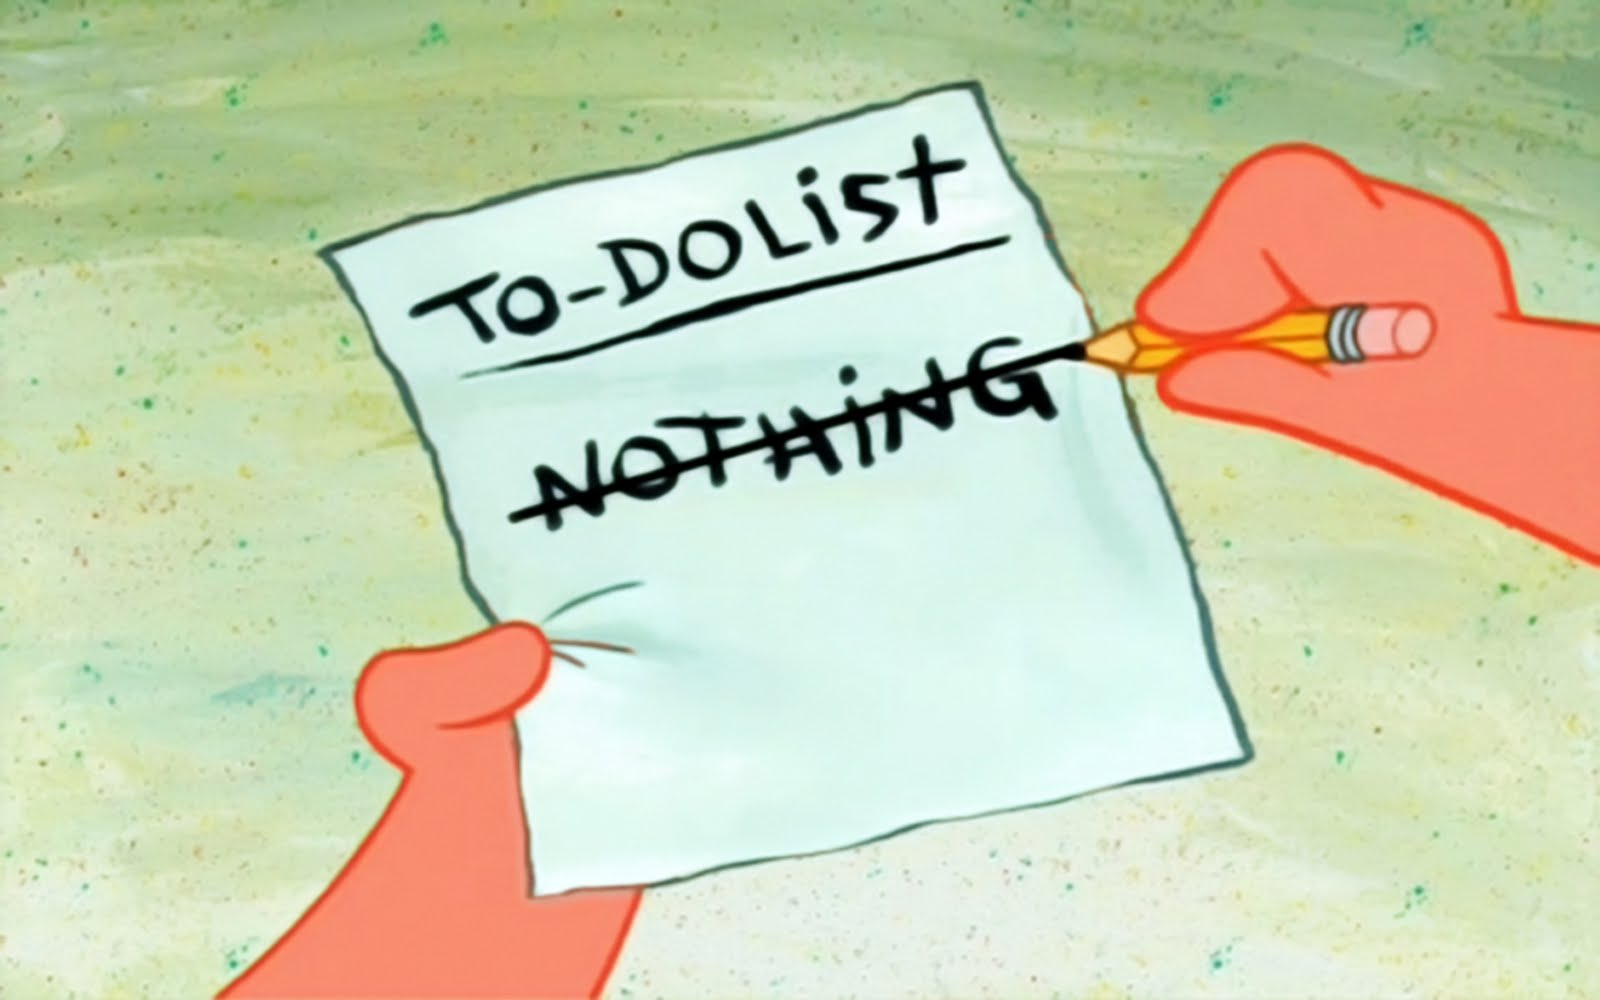 Patrick To-Do list : Nothing